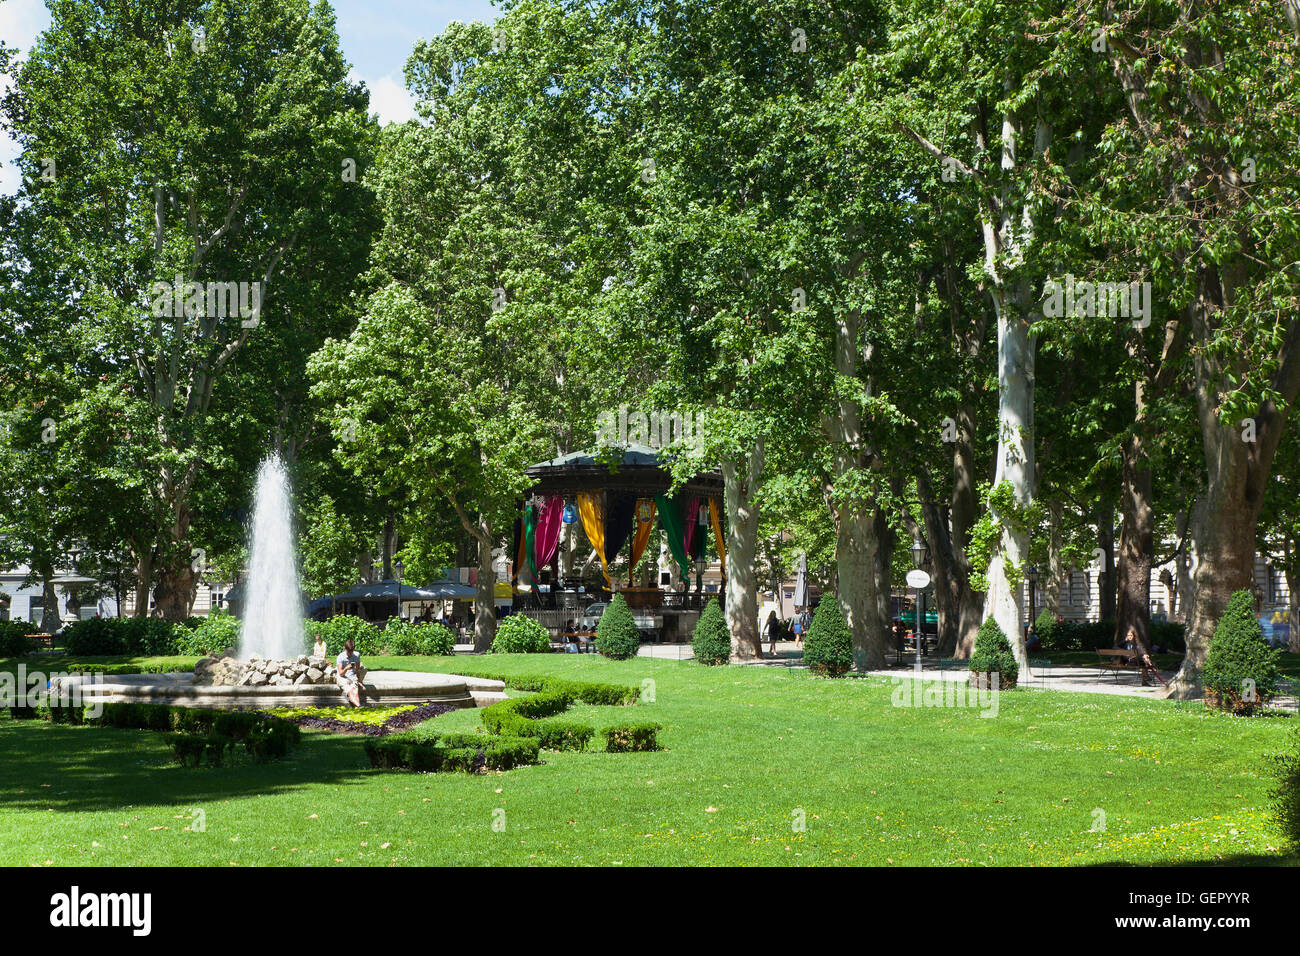 Croatia Zagreb Old Town Fountain And Bandstand In Park Zrinjevac Stock Photo Alamy